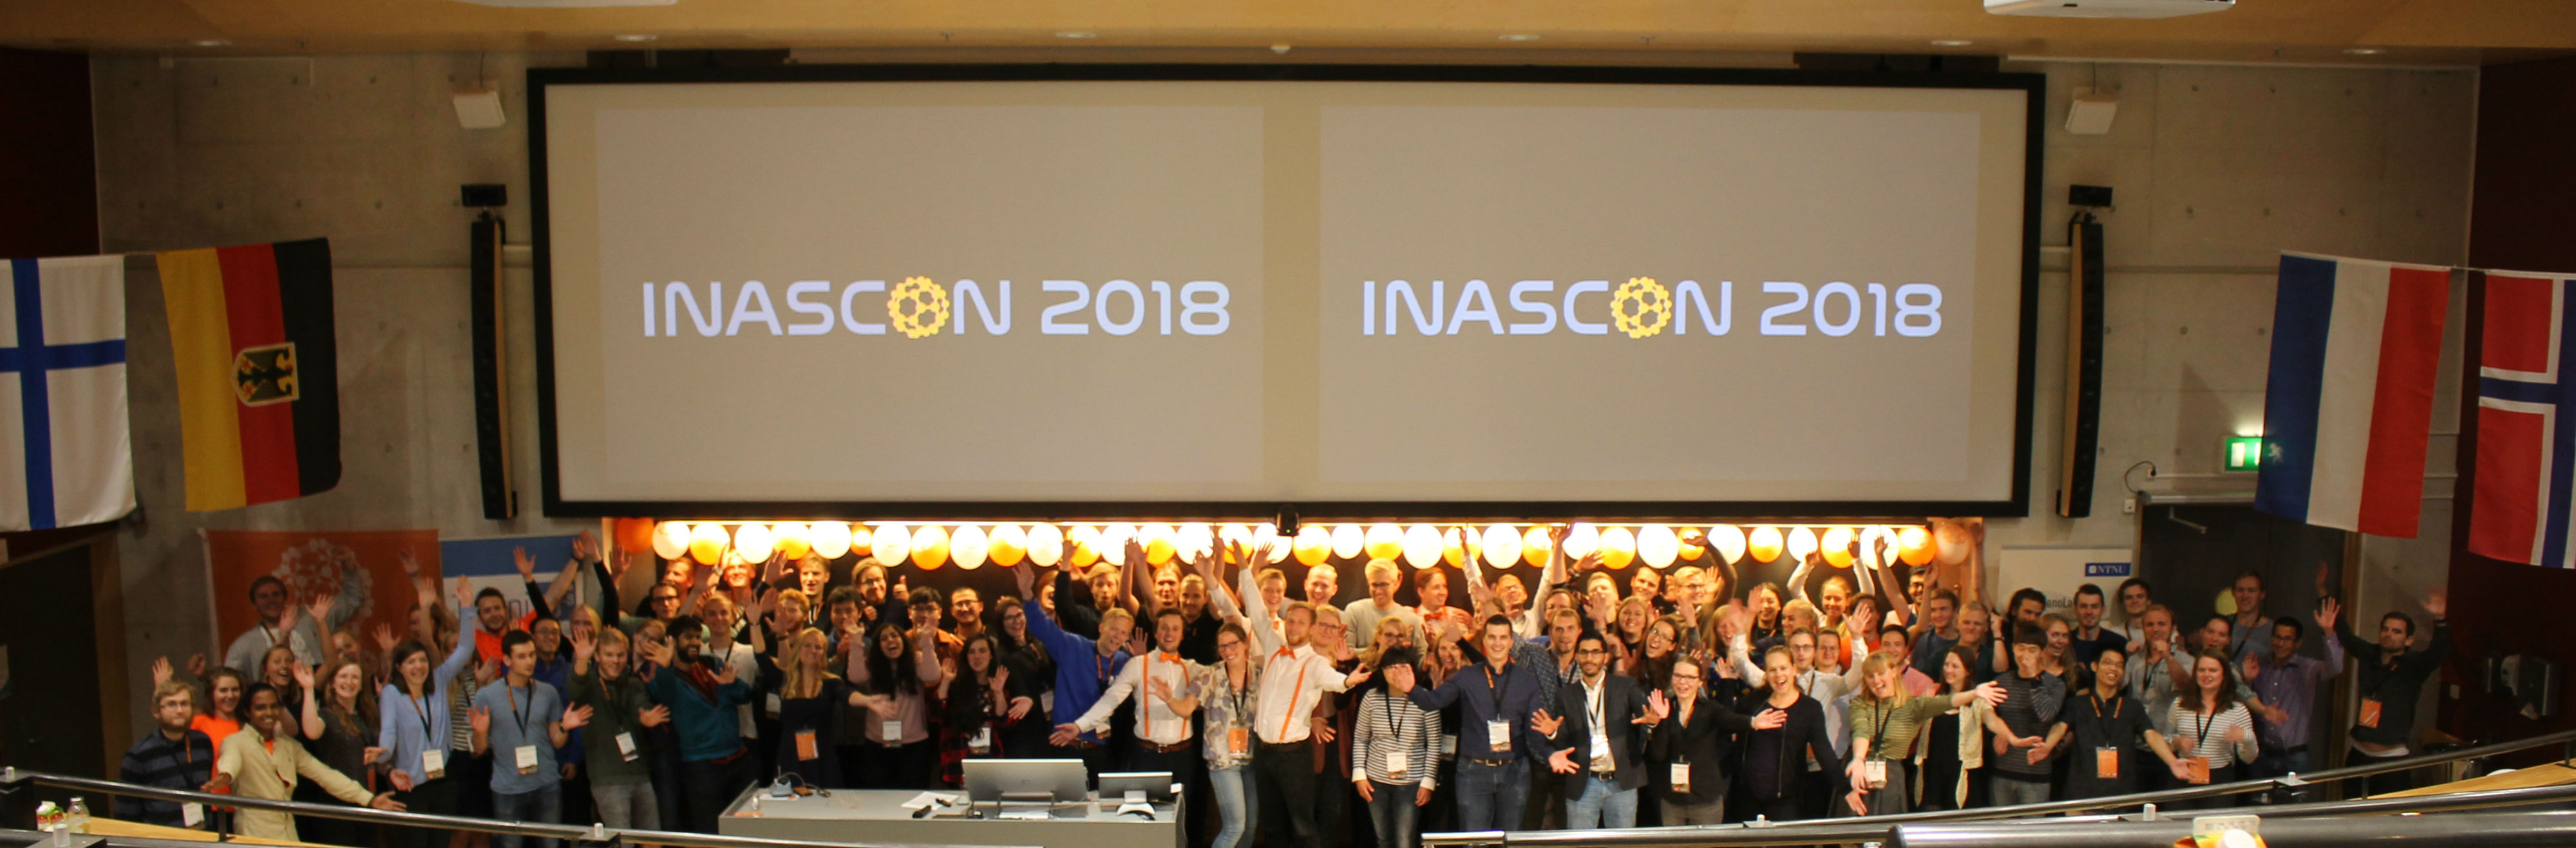 Participants at INASCON2018 photo